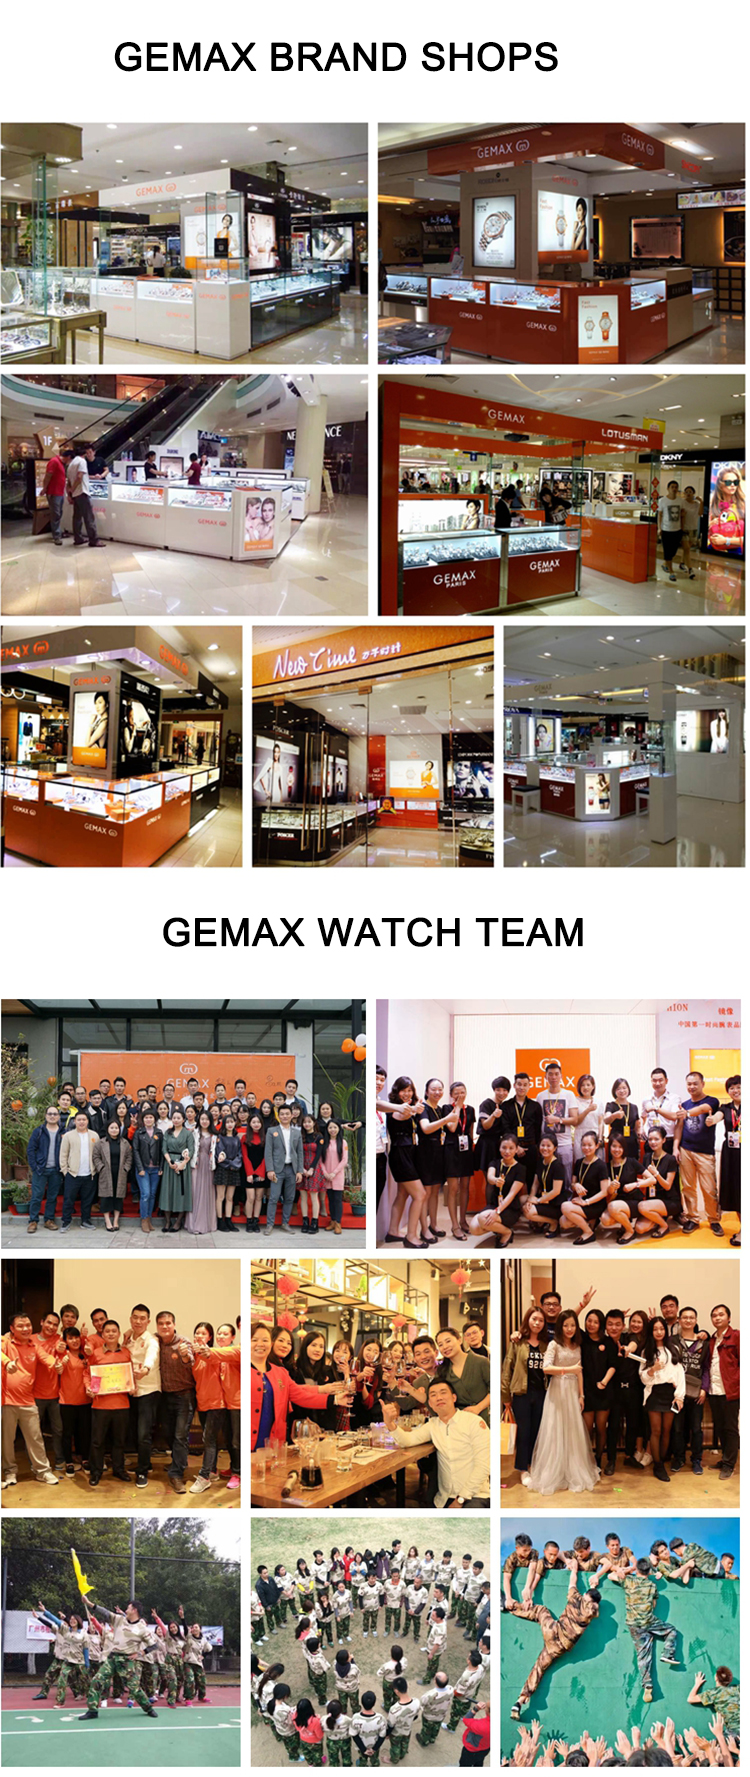 2Gemax-Watches-SHOP-&-TEAM